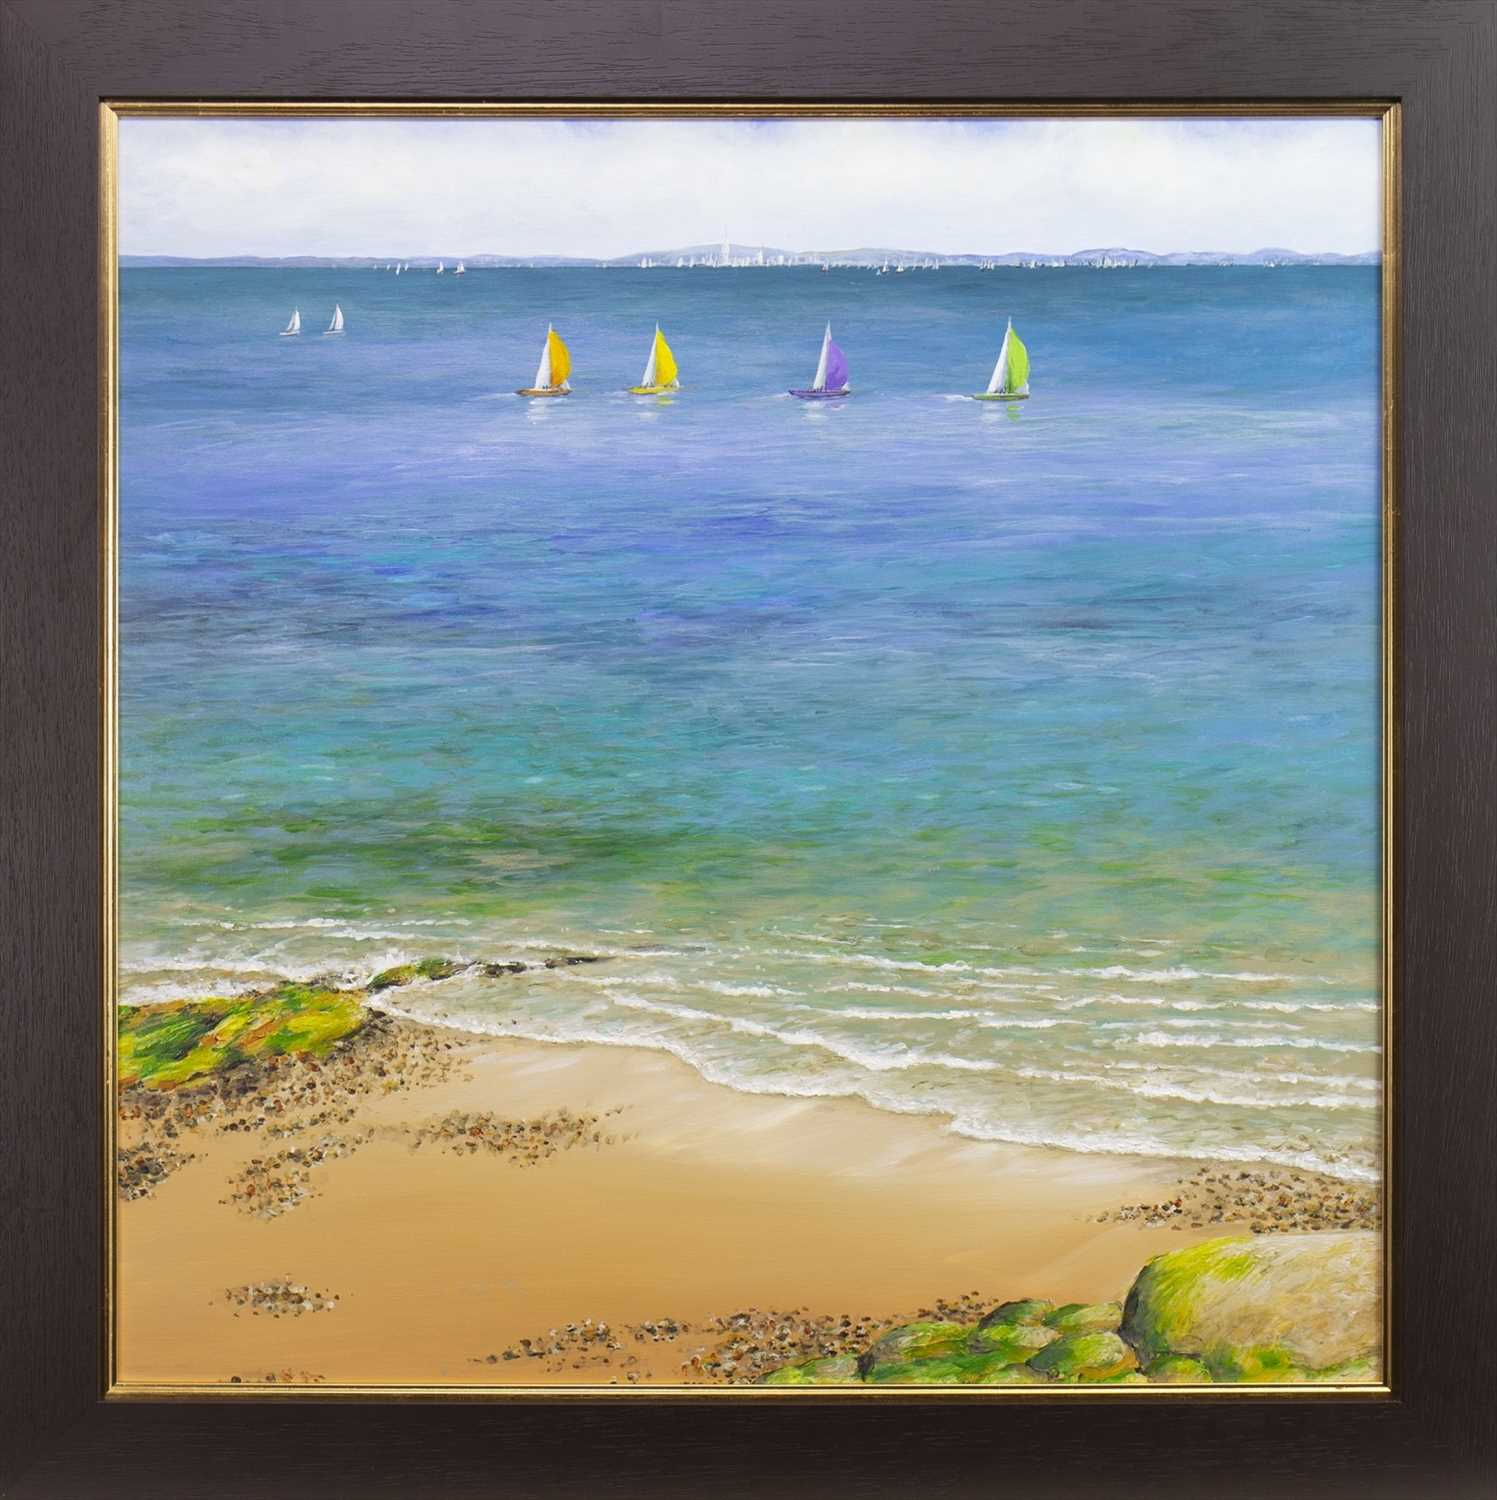 Lot 13-SPINMAKERS UP ON A CALM DAY, AN OIL BY SANDRA FRANCIS